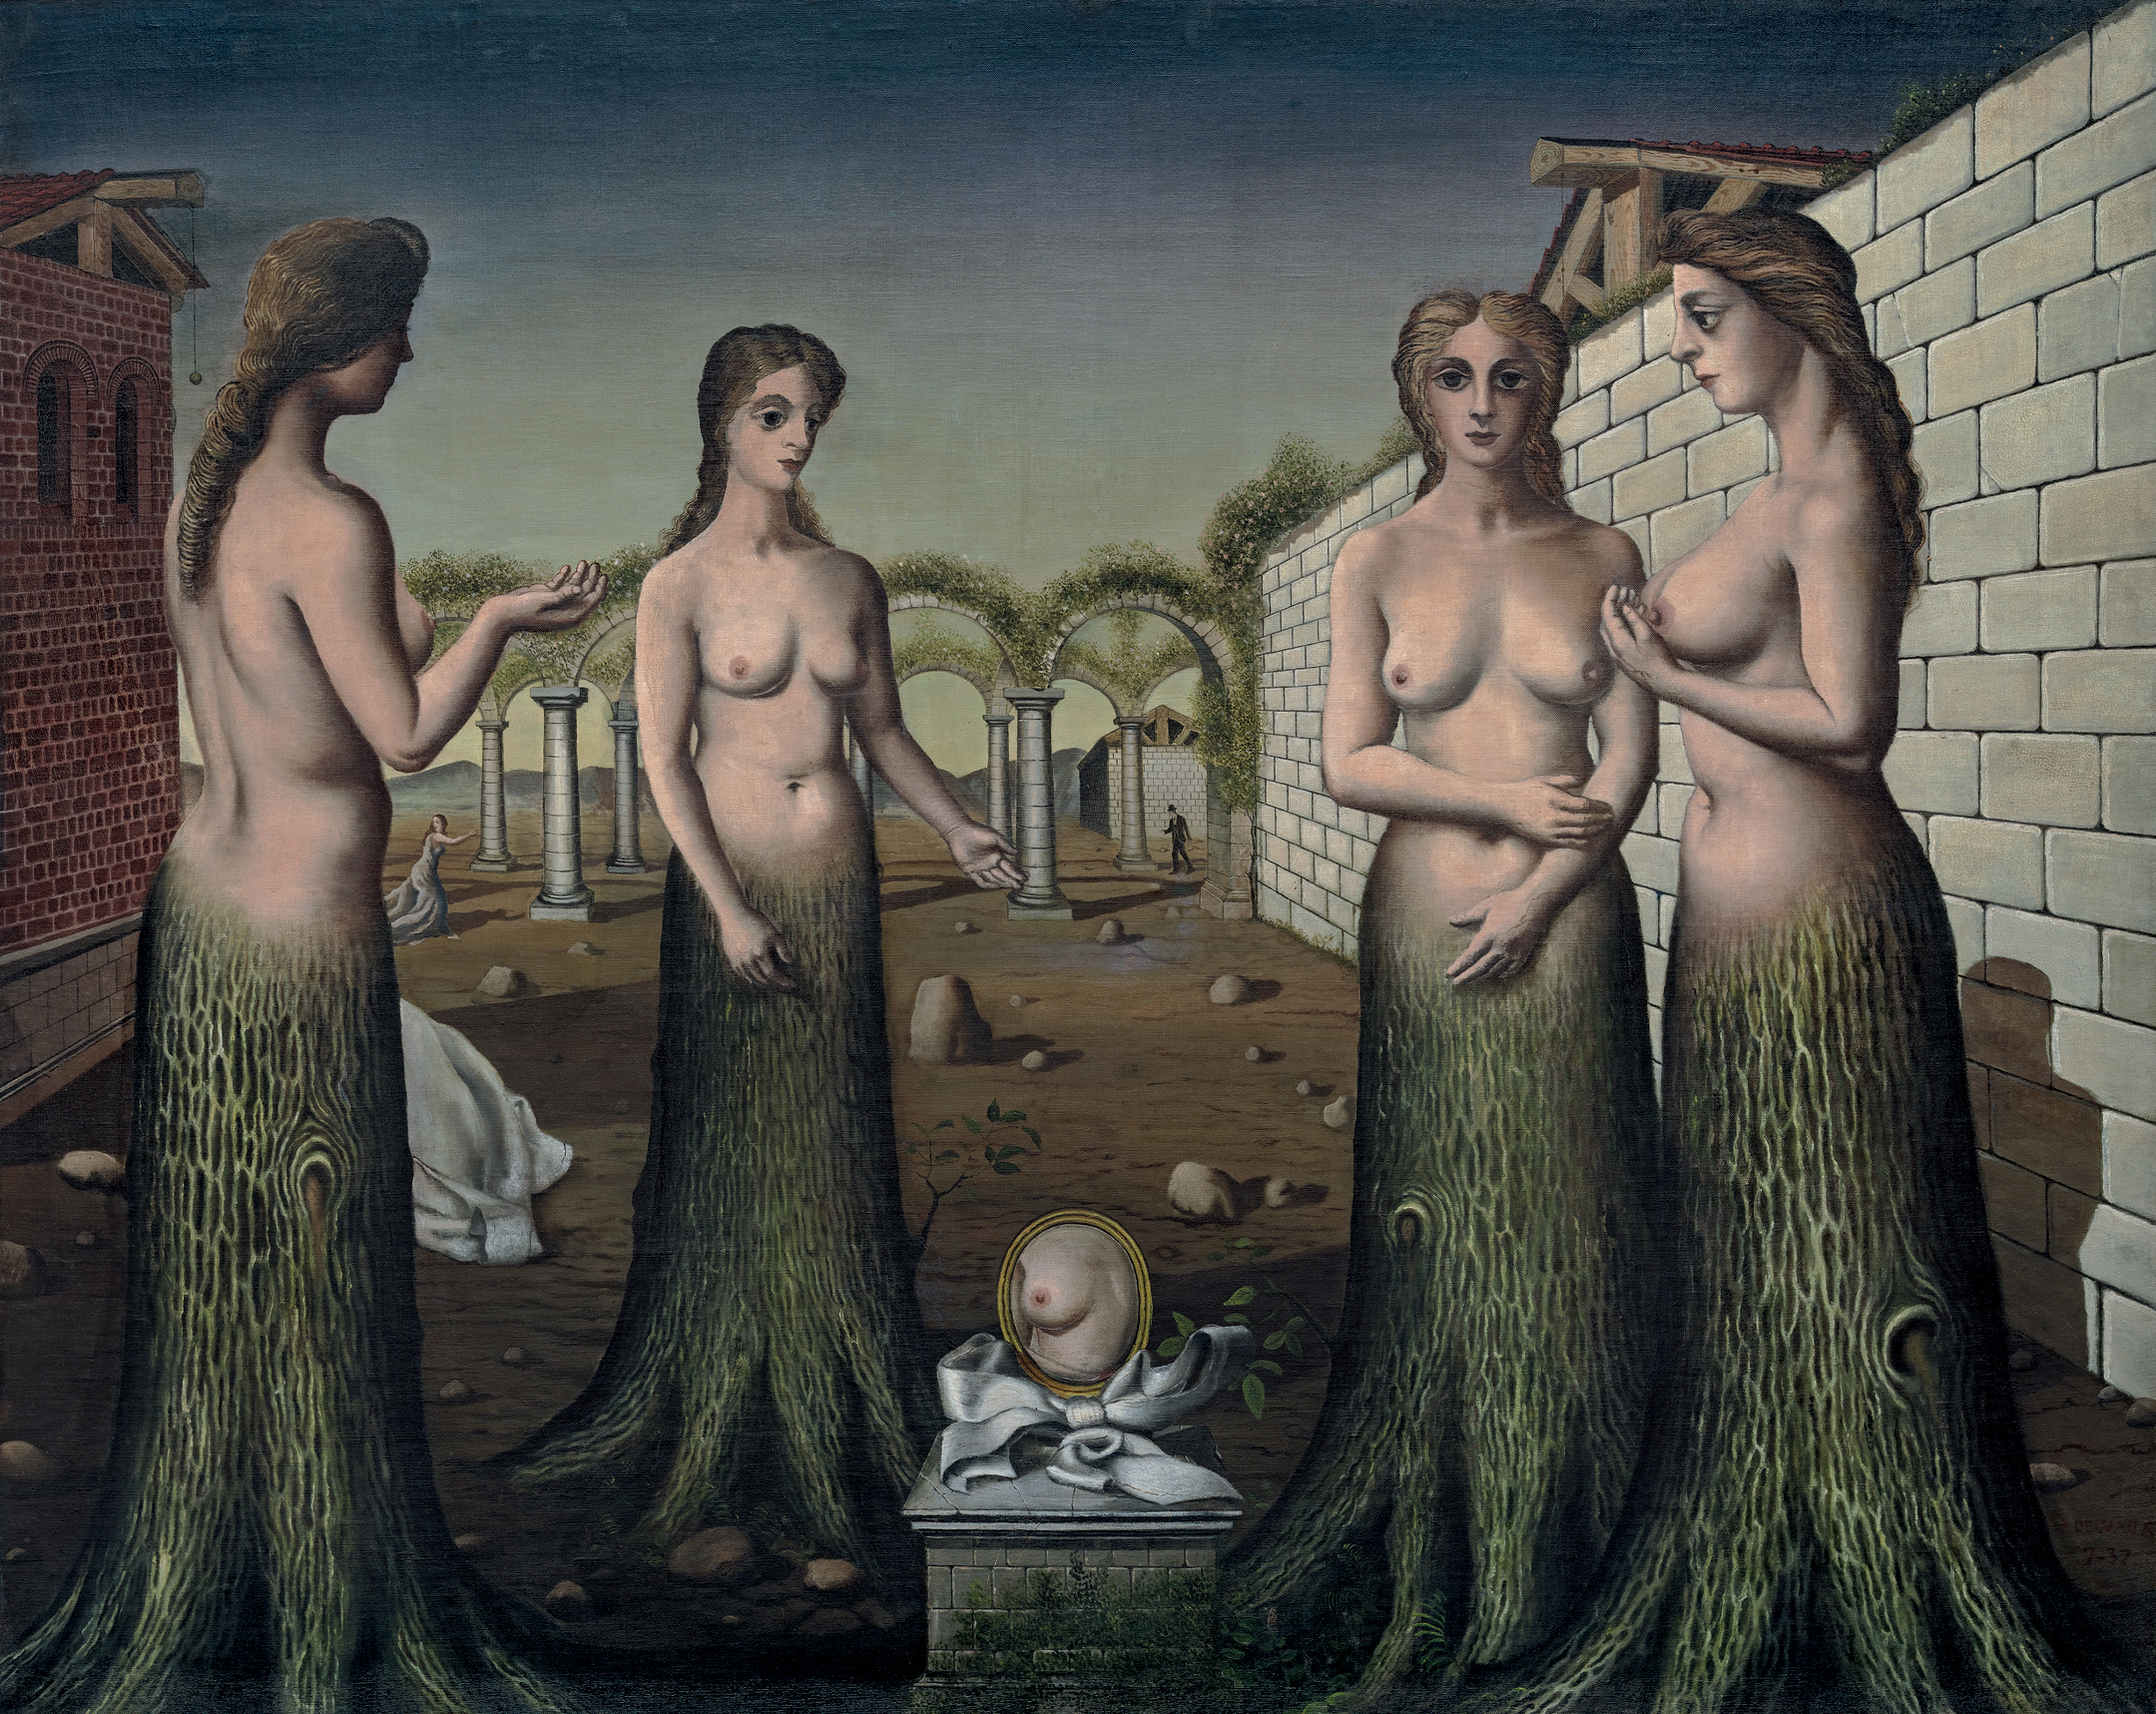 The Break of Day (L'aurore) (1937), by Paul Delvaux. Oil on canvas, 120 x 150.5 cm. Solomon R. Guggenheim Foundation, Peggy Guggenheim Collection, Venice, 1976. © 2017 Foundation Paul Delvaux, Sint-Idesbald—ARS/SABAM Belgium.